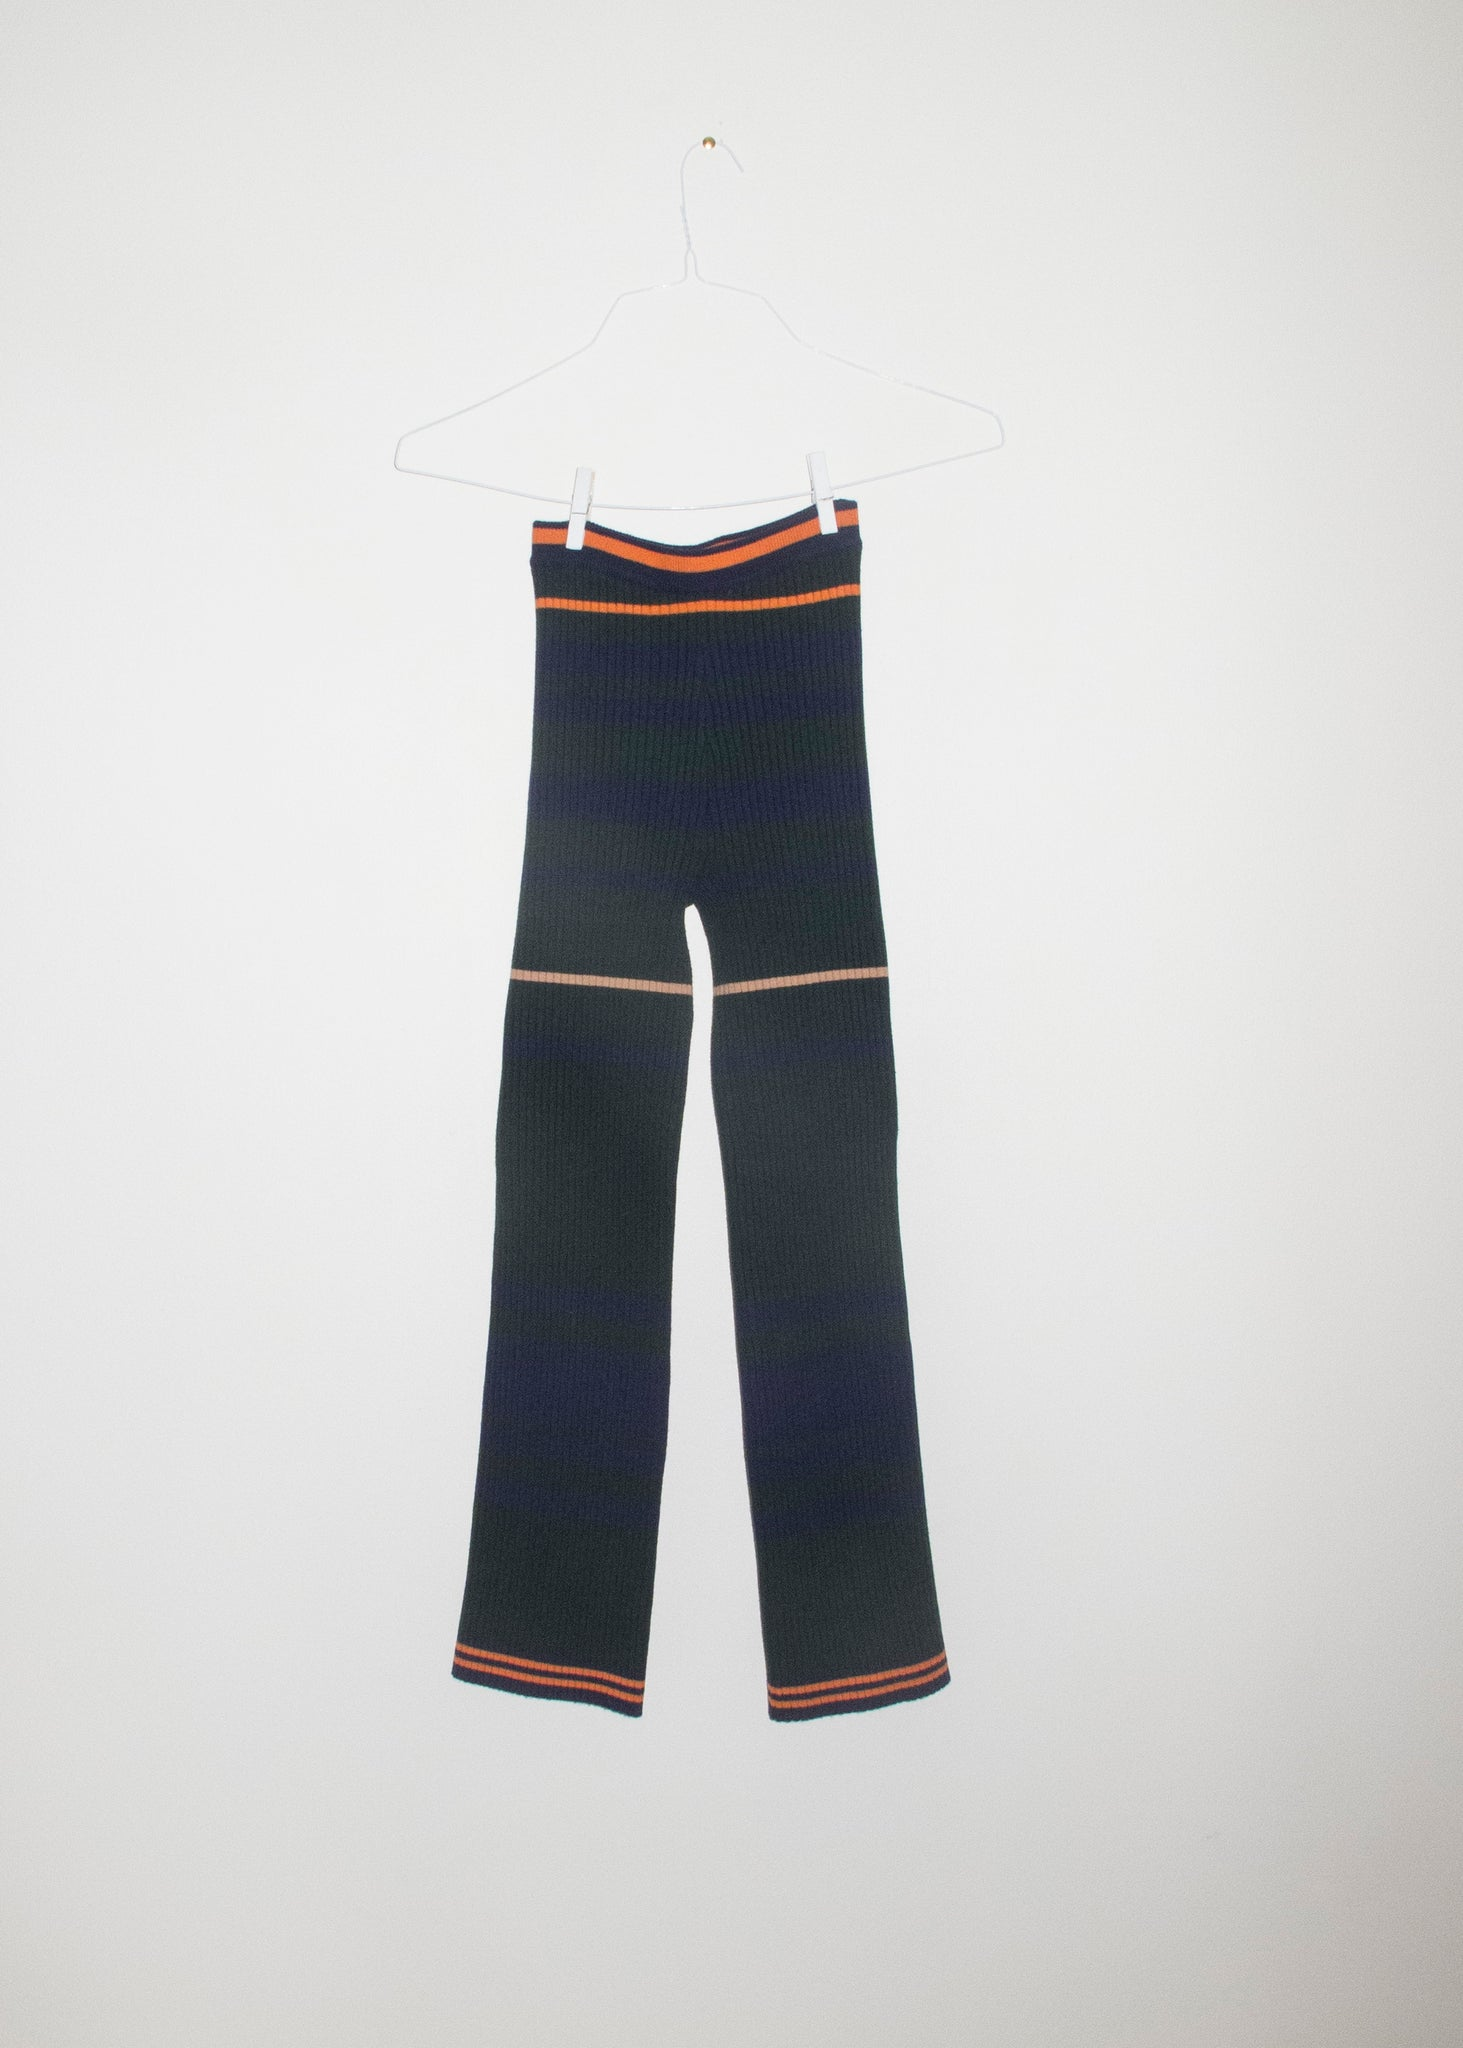 NONNA Pants in Engineered Stripe